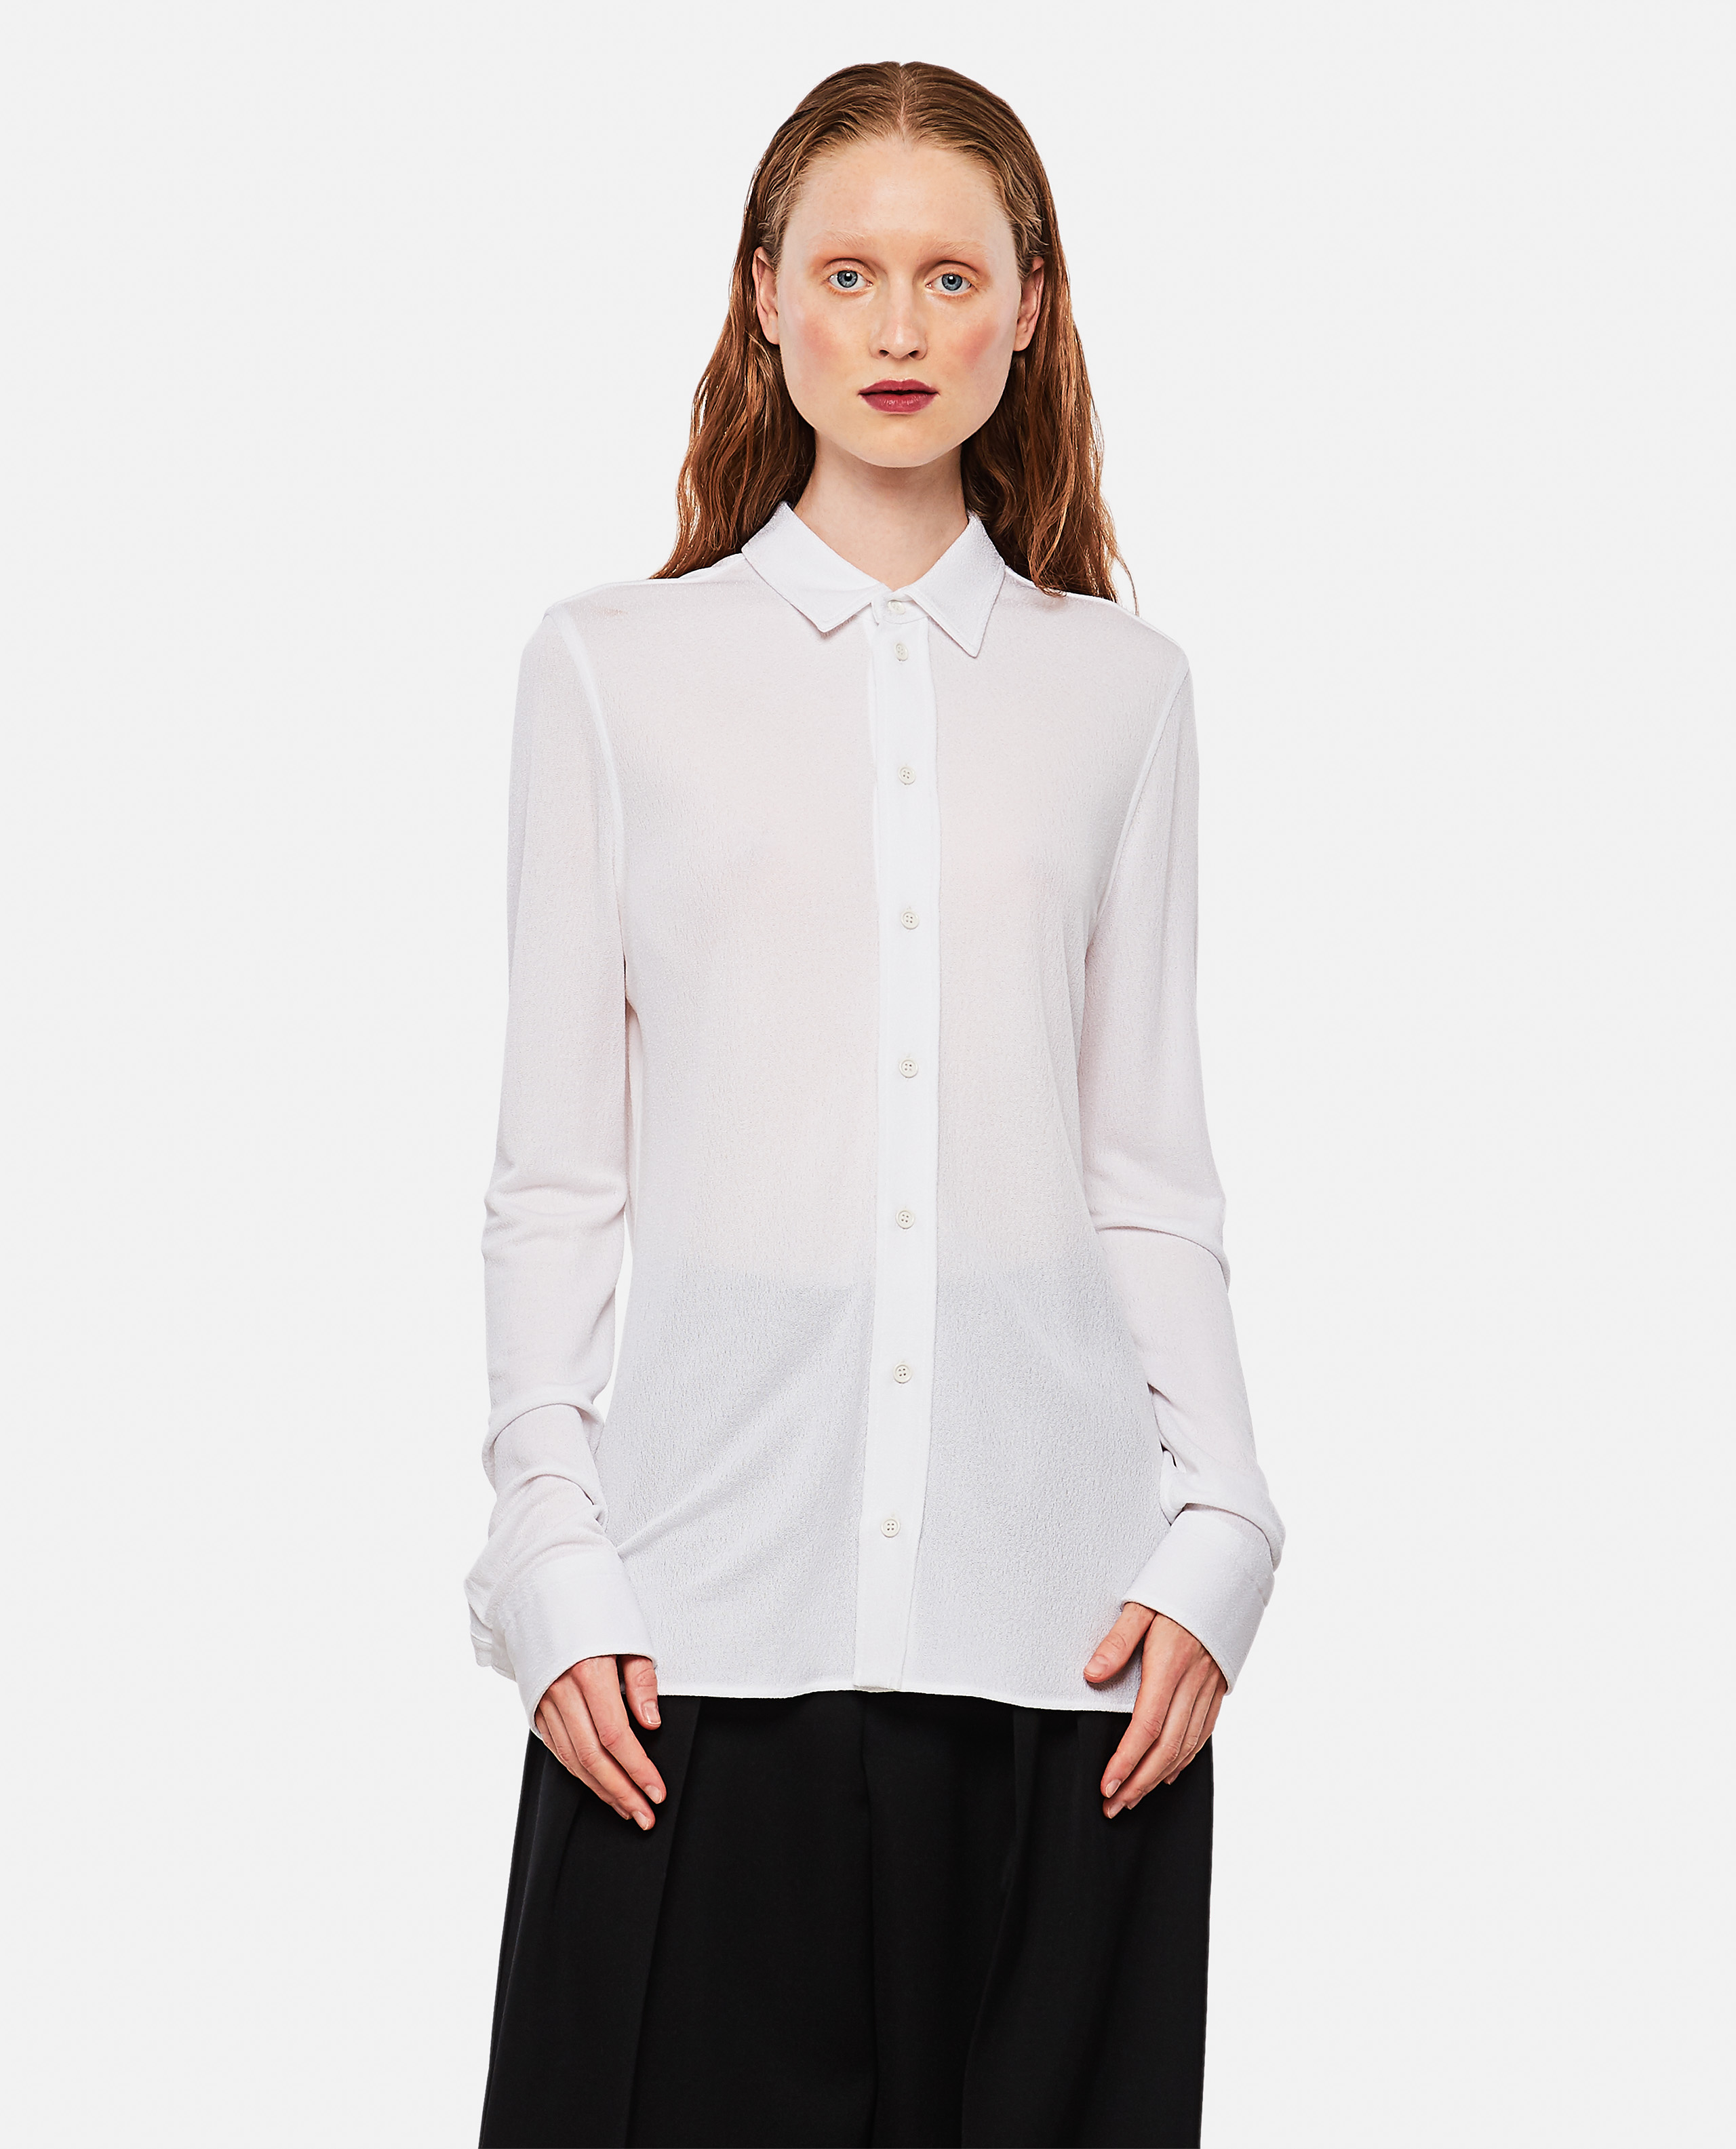 Long-sleeved jersey shirt